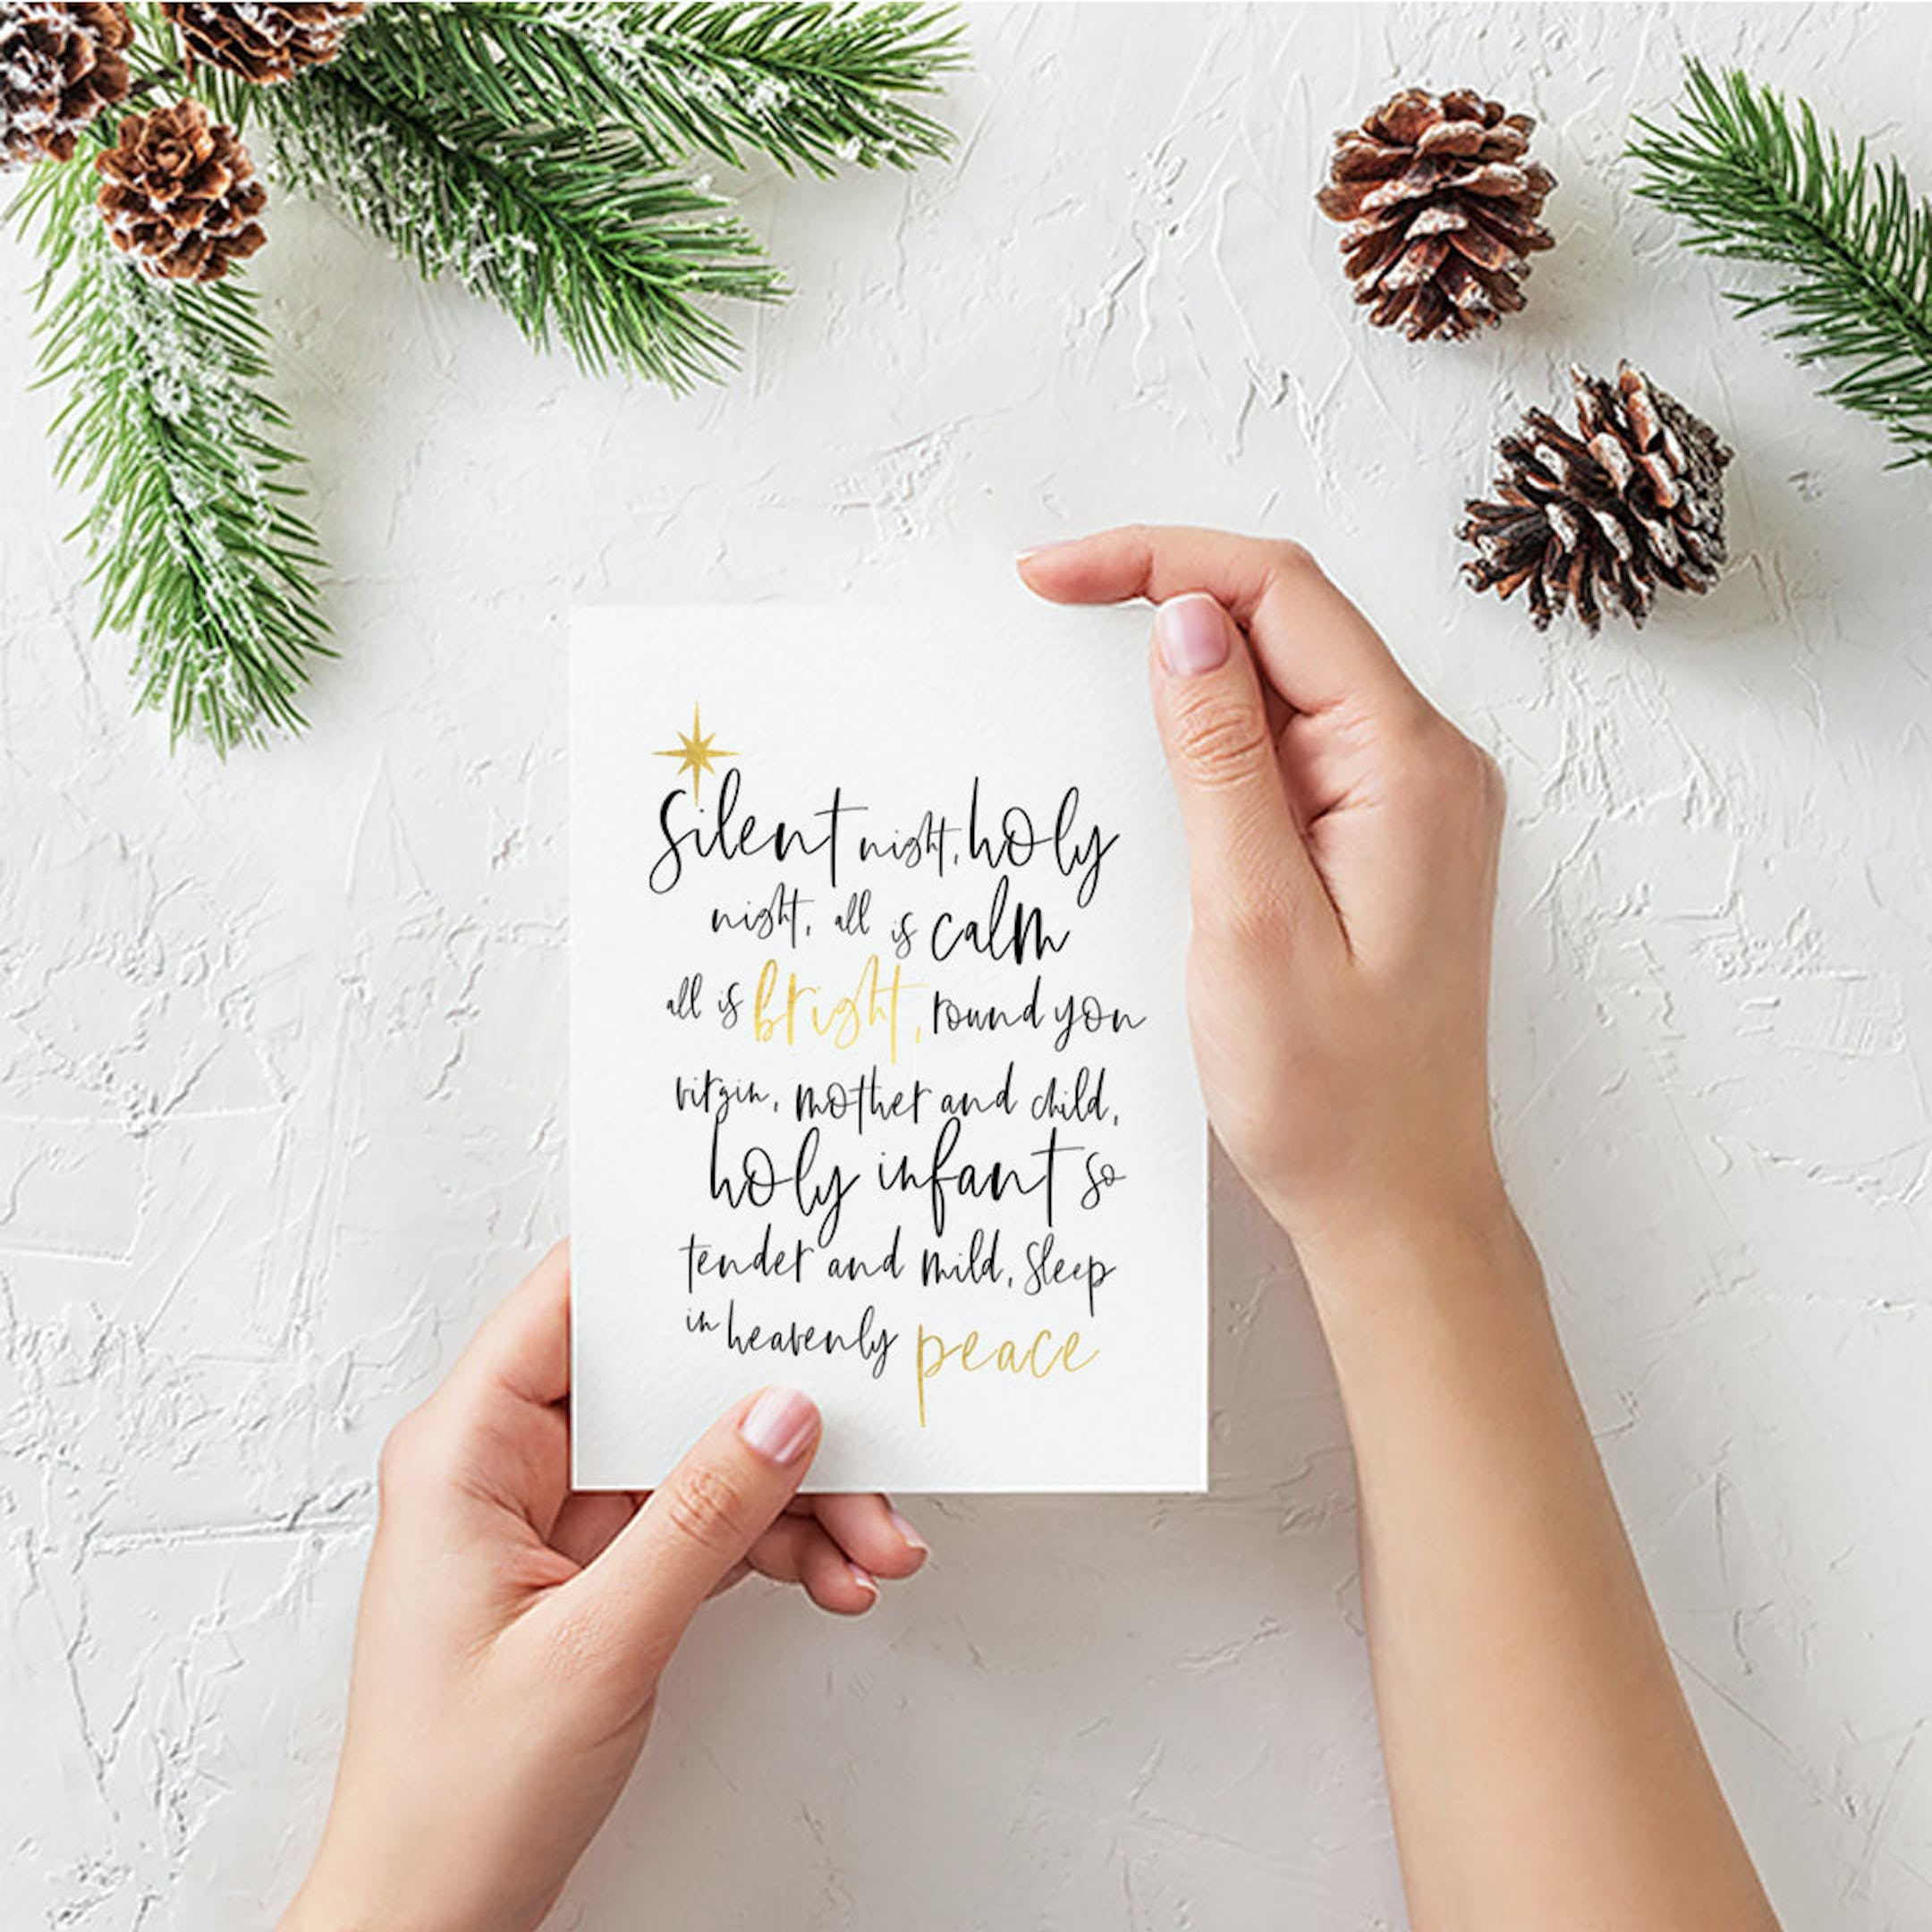 Silent Night - Carols at Christmas Gold Card - Christian Lettering Company